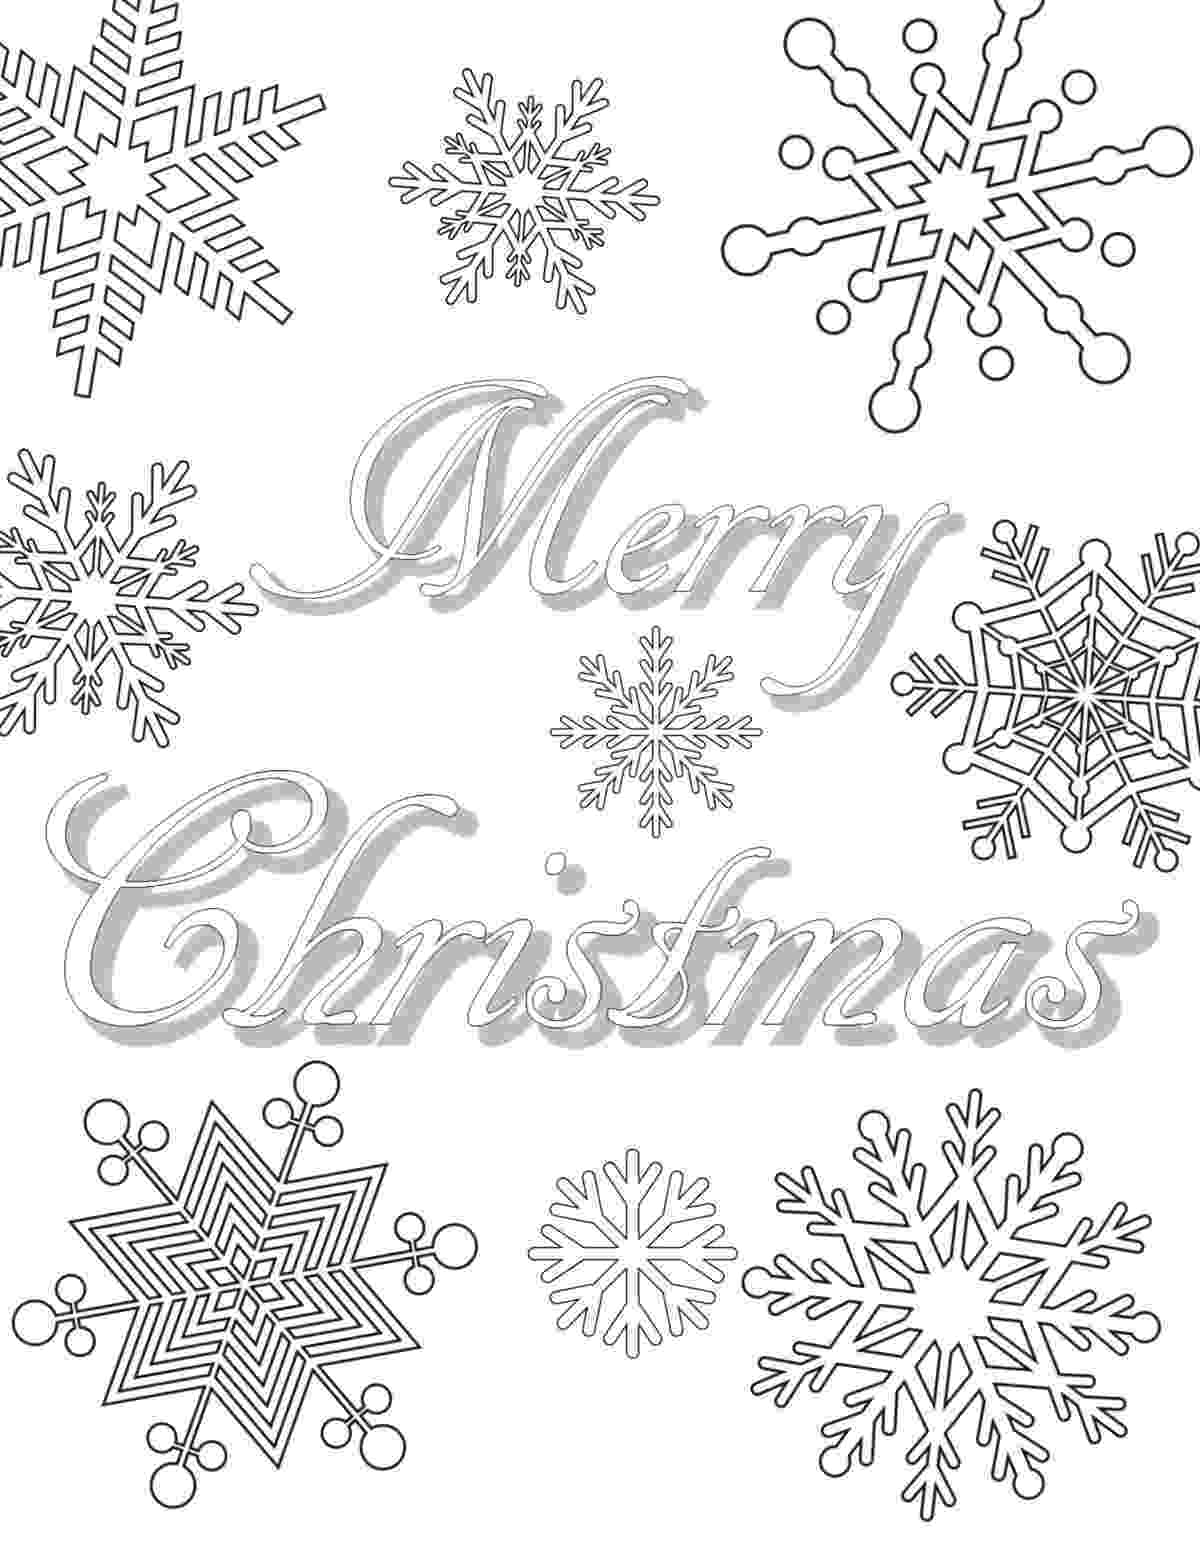 colouring pages christmas free santa in sleigh coloring pages download and print for free christmas colouring free pages